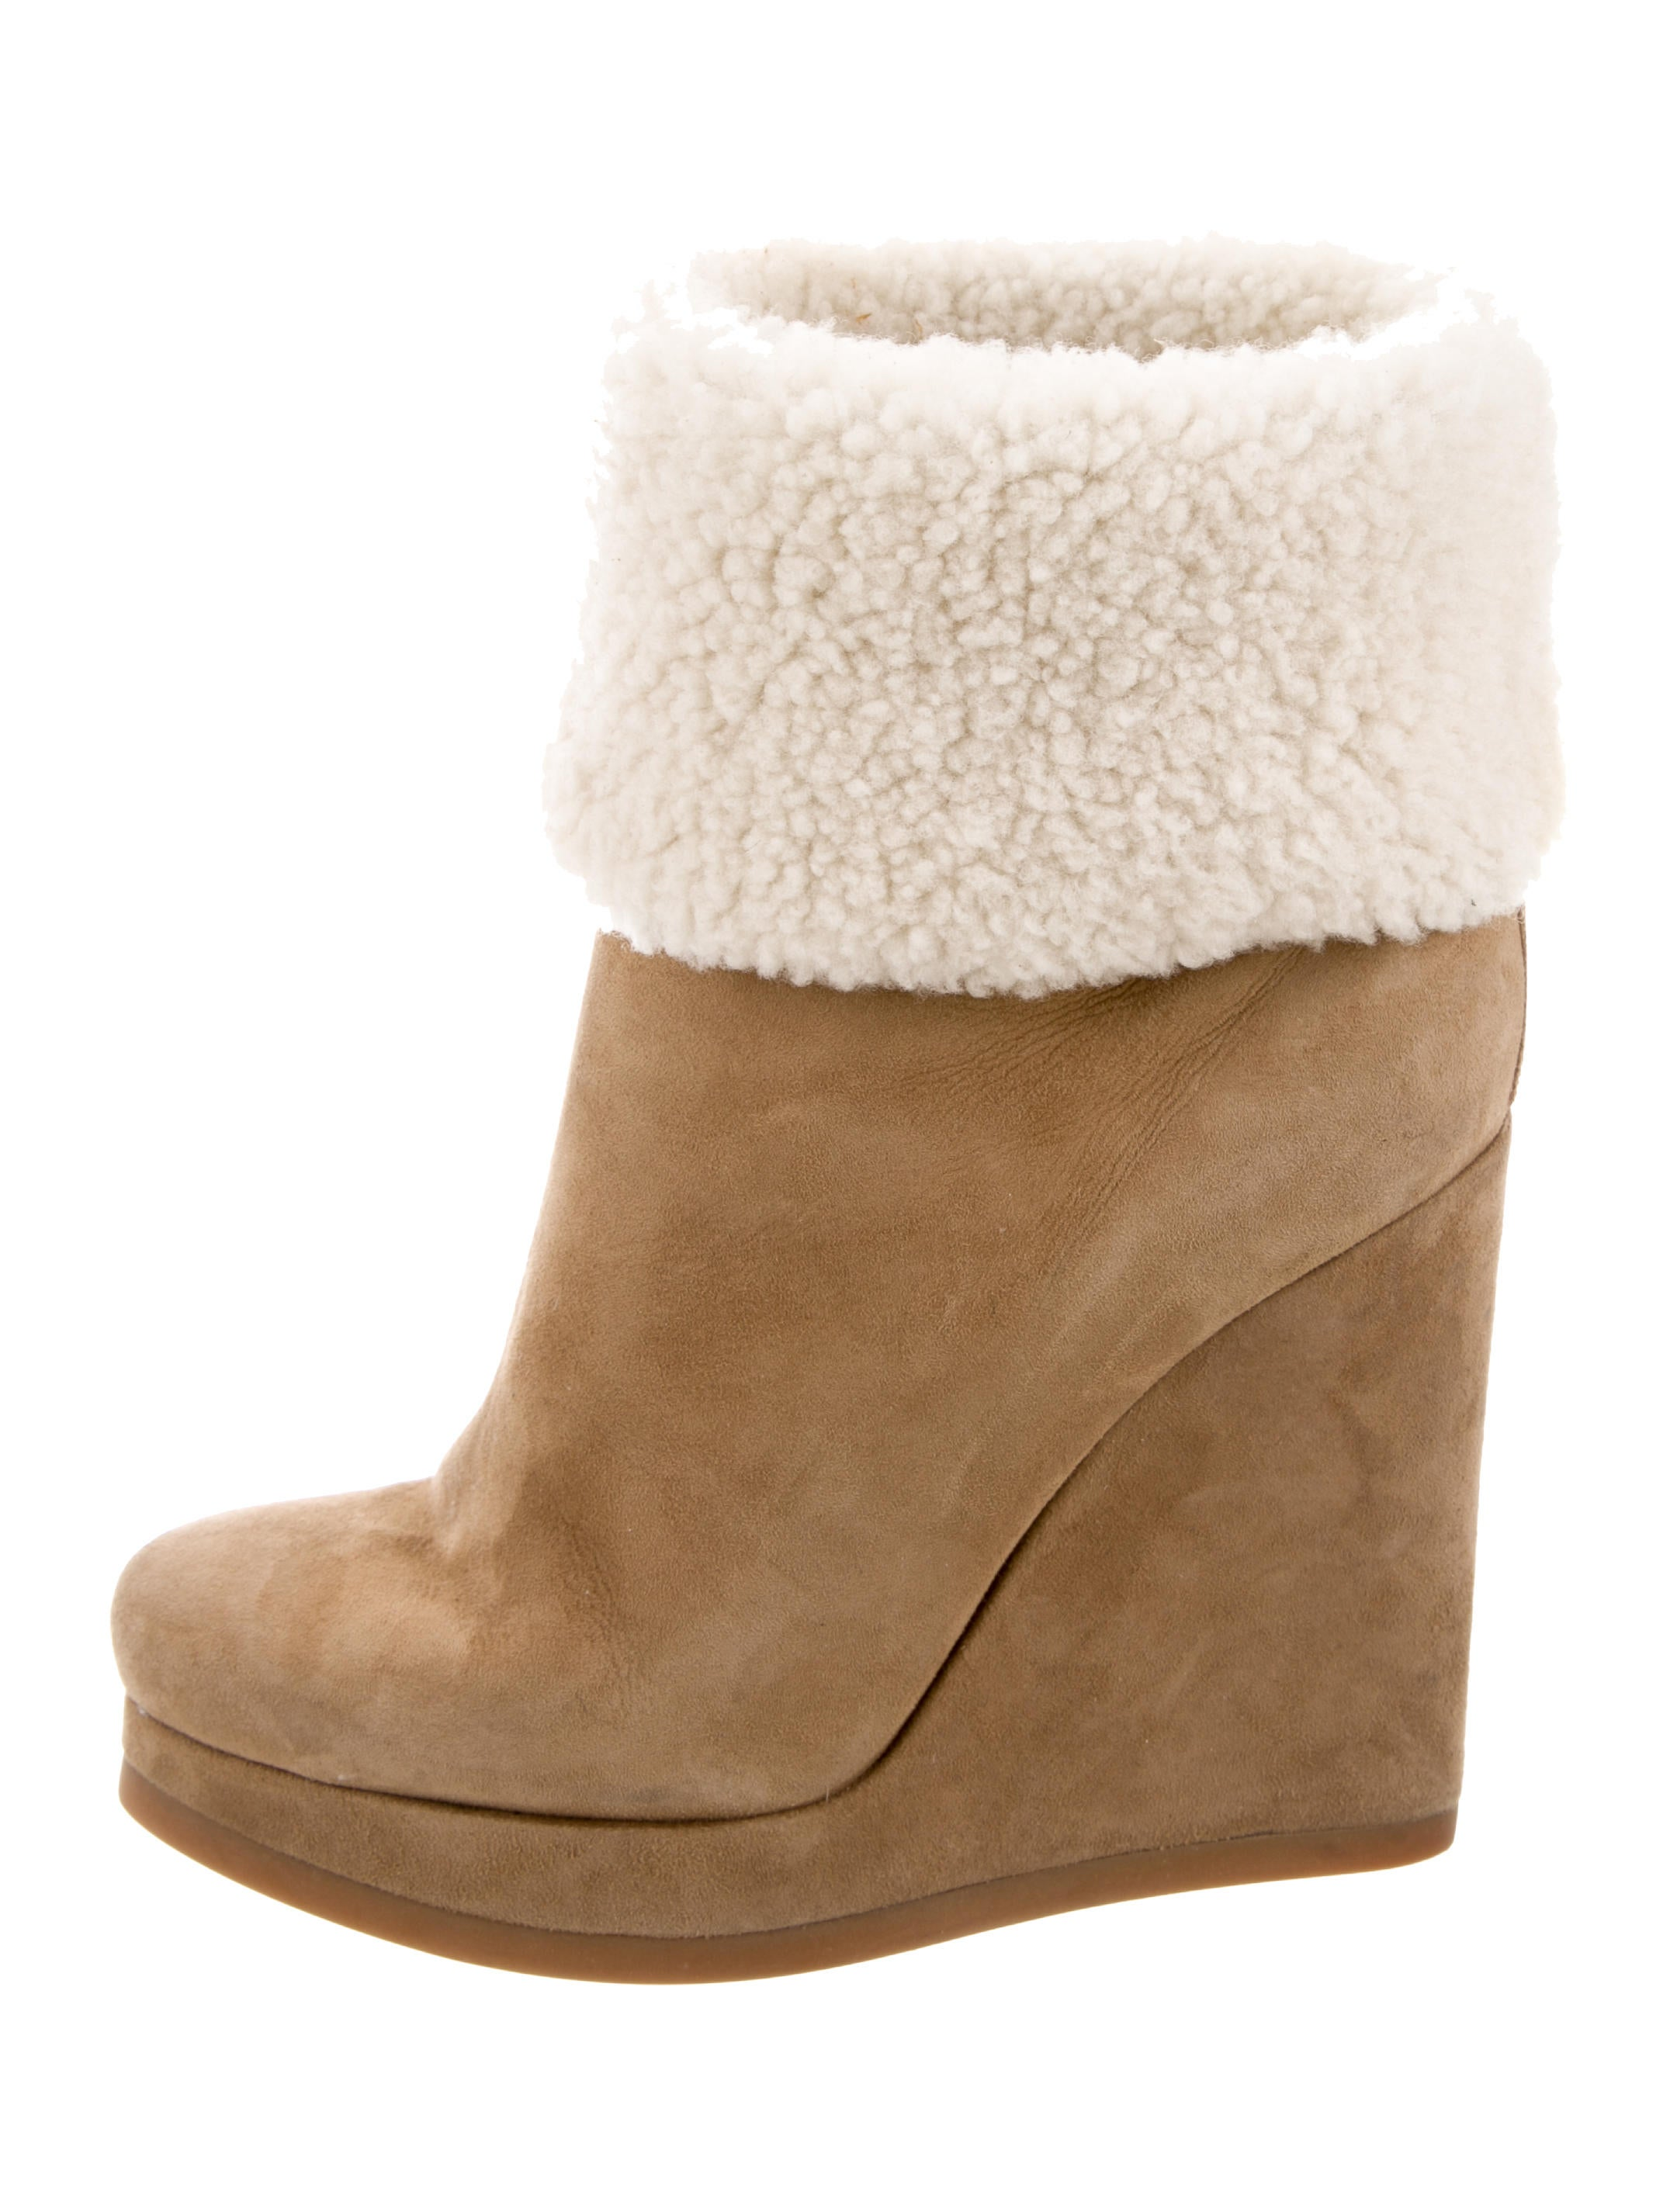 low price fee shipping cheap price Jil Sander Shearling-Trimmed Wedge Ankle Boots cheap for sale cheap largest supplier clearance pre order xDH5oT